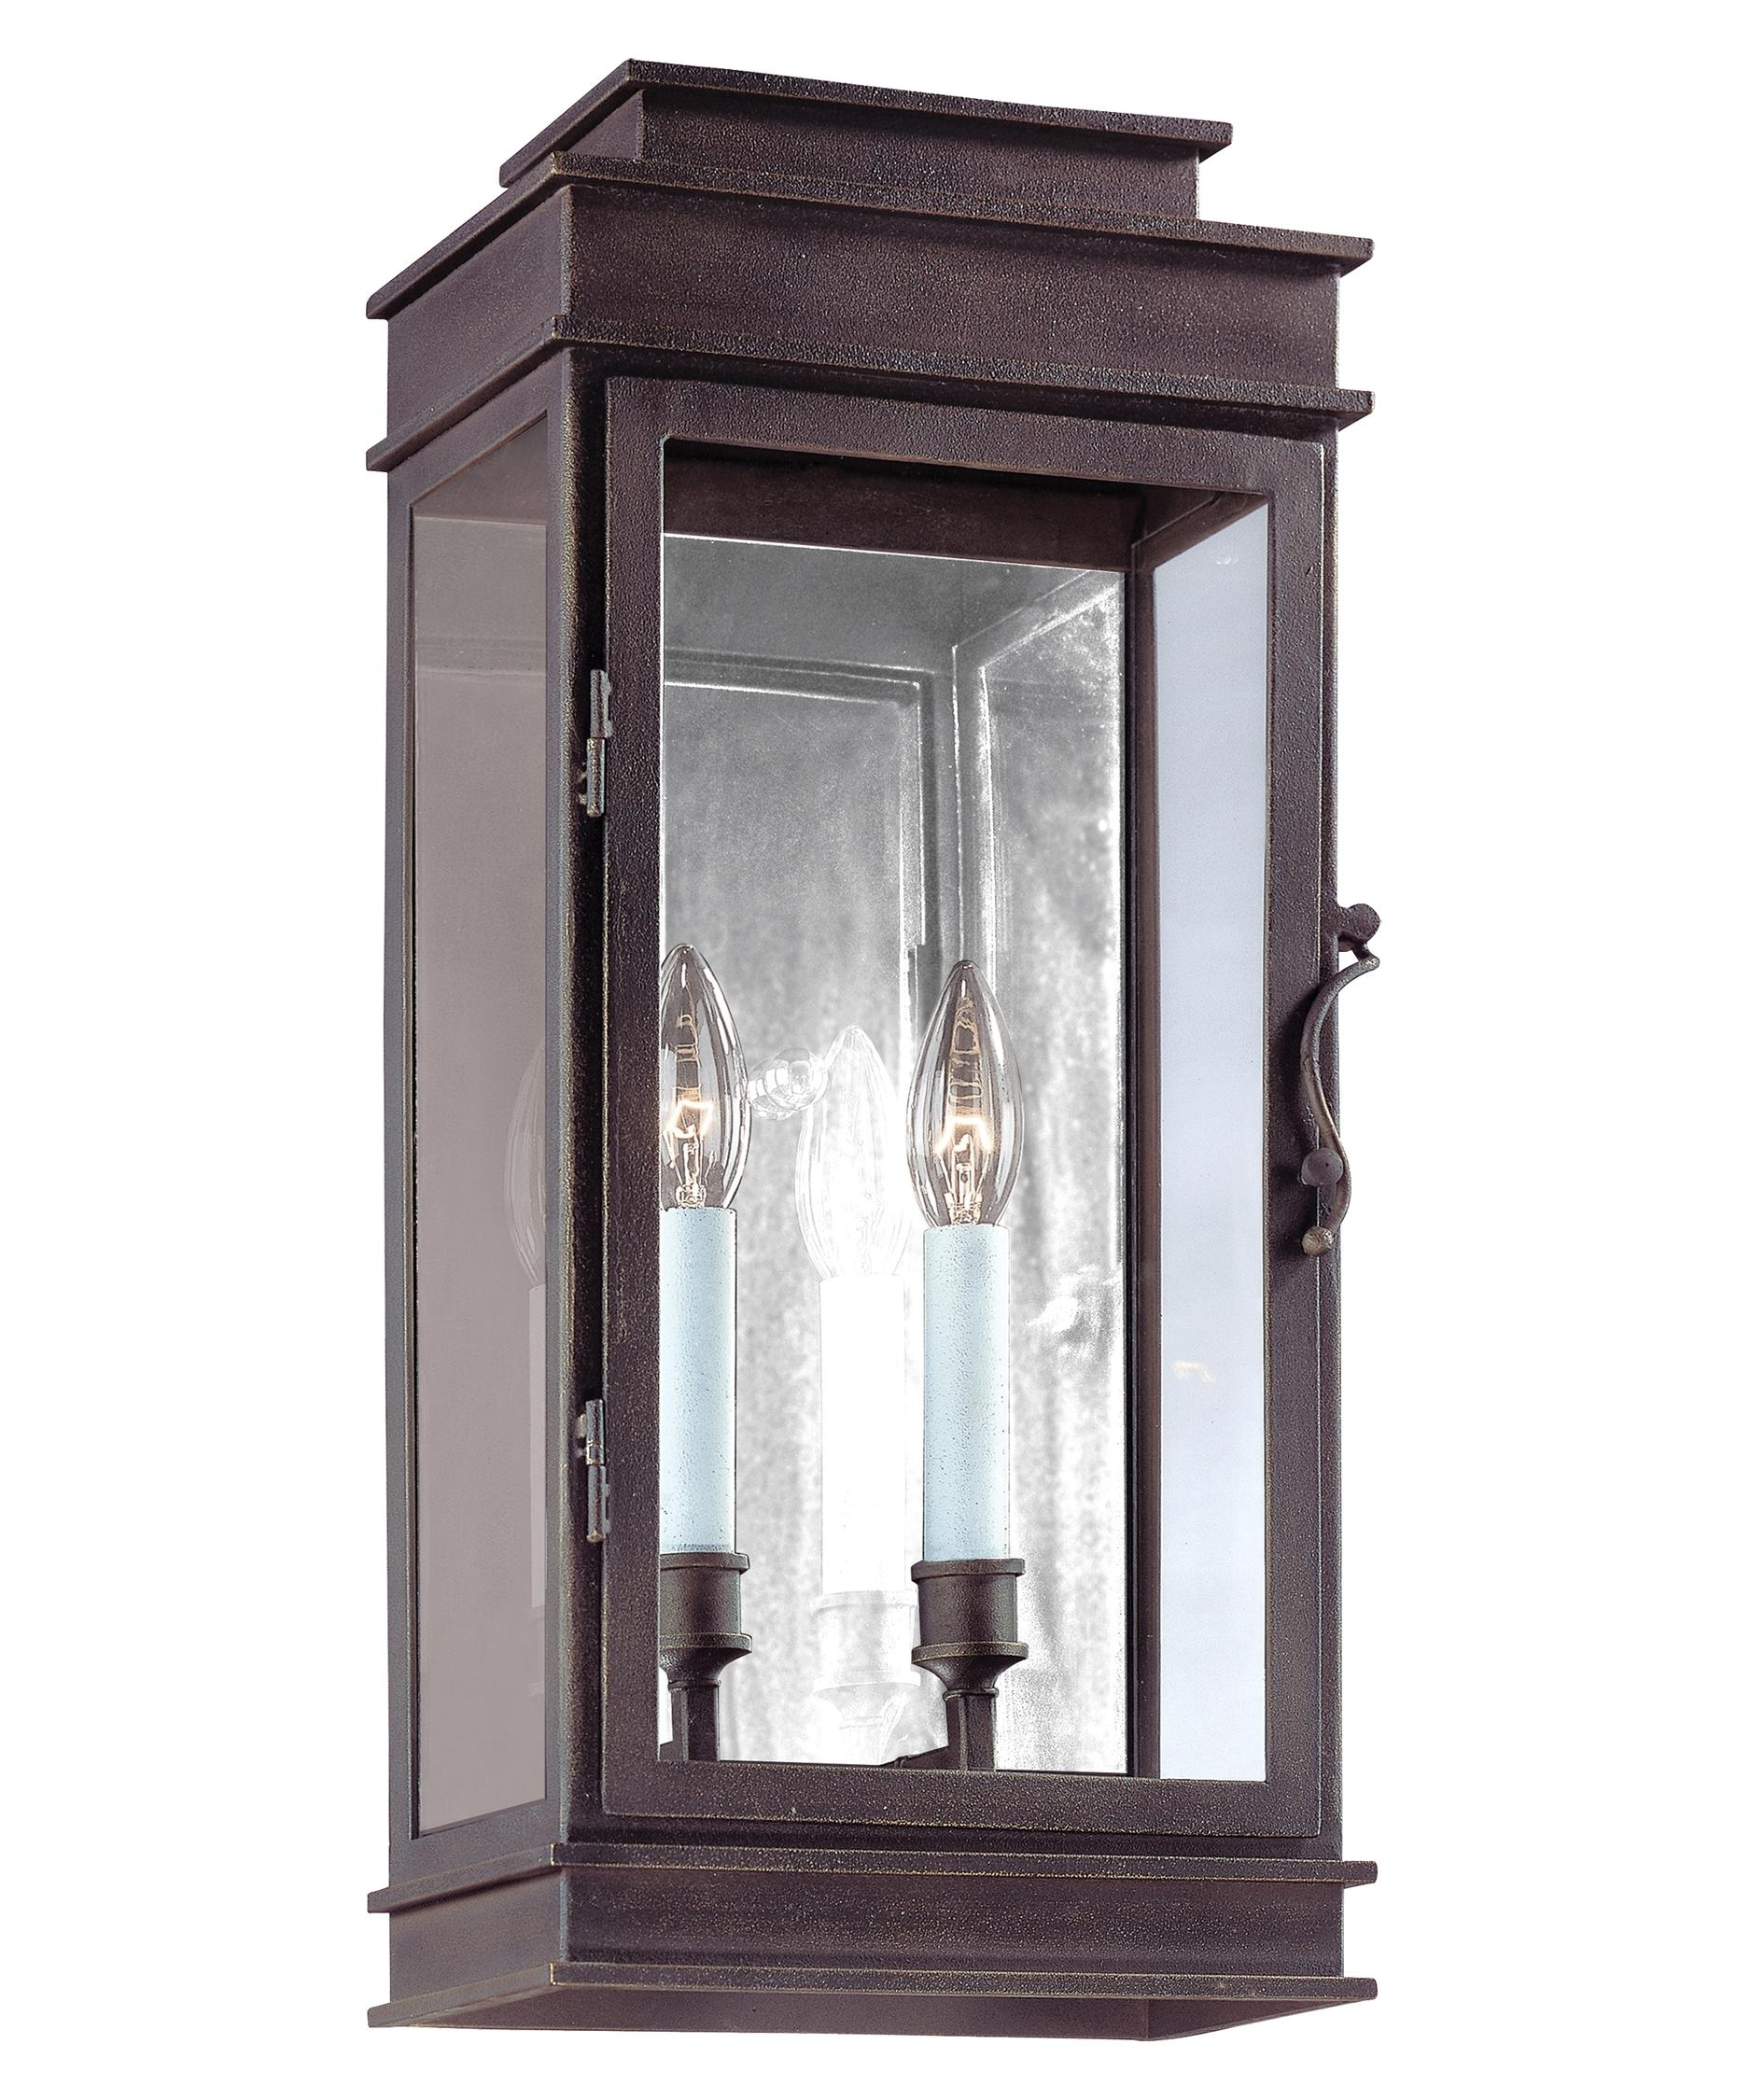 Troy Lighting B2972 Vintage 9 Inch Wide 2 Light Outdoor Wall Light Within Vintage Outdoor Lanterns (View 6 of 20)